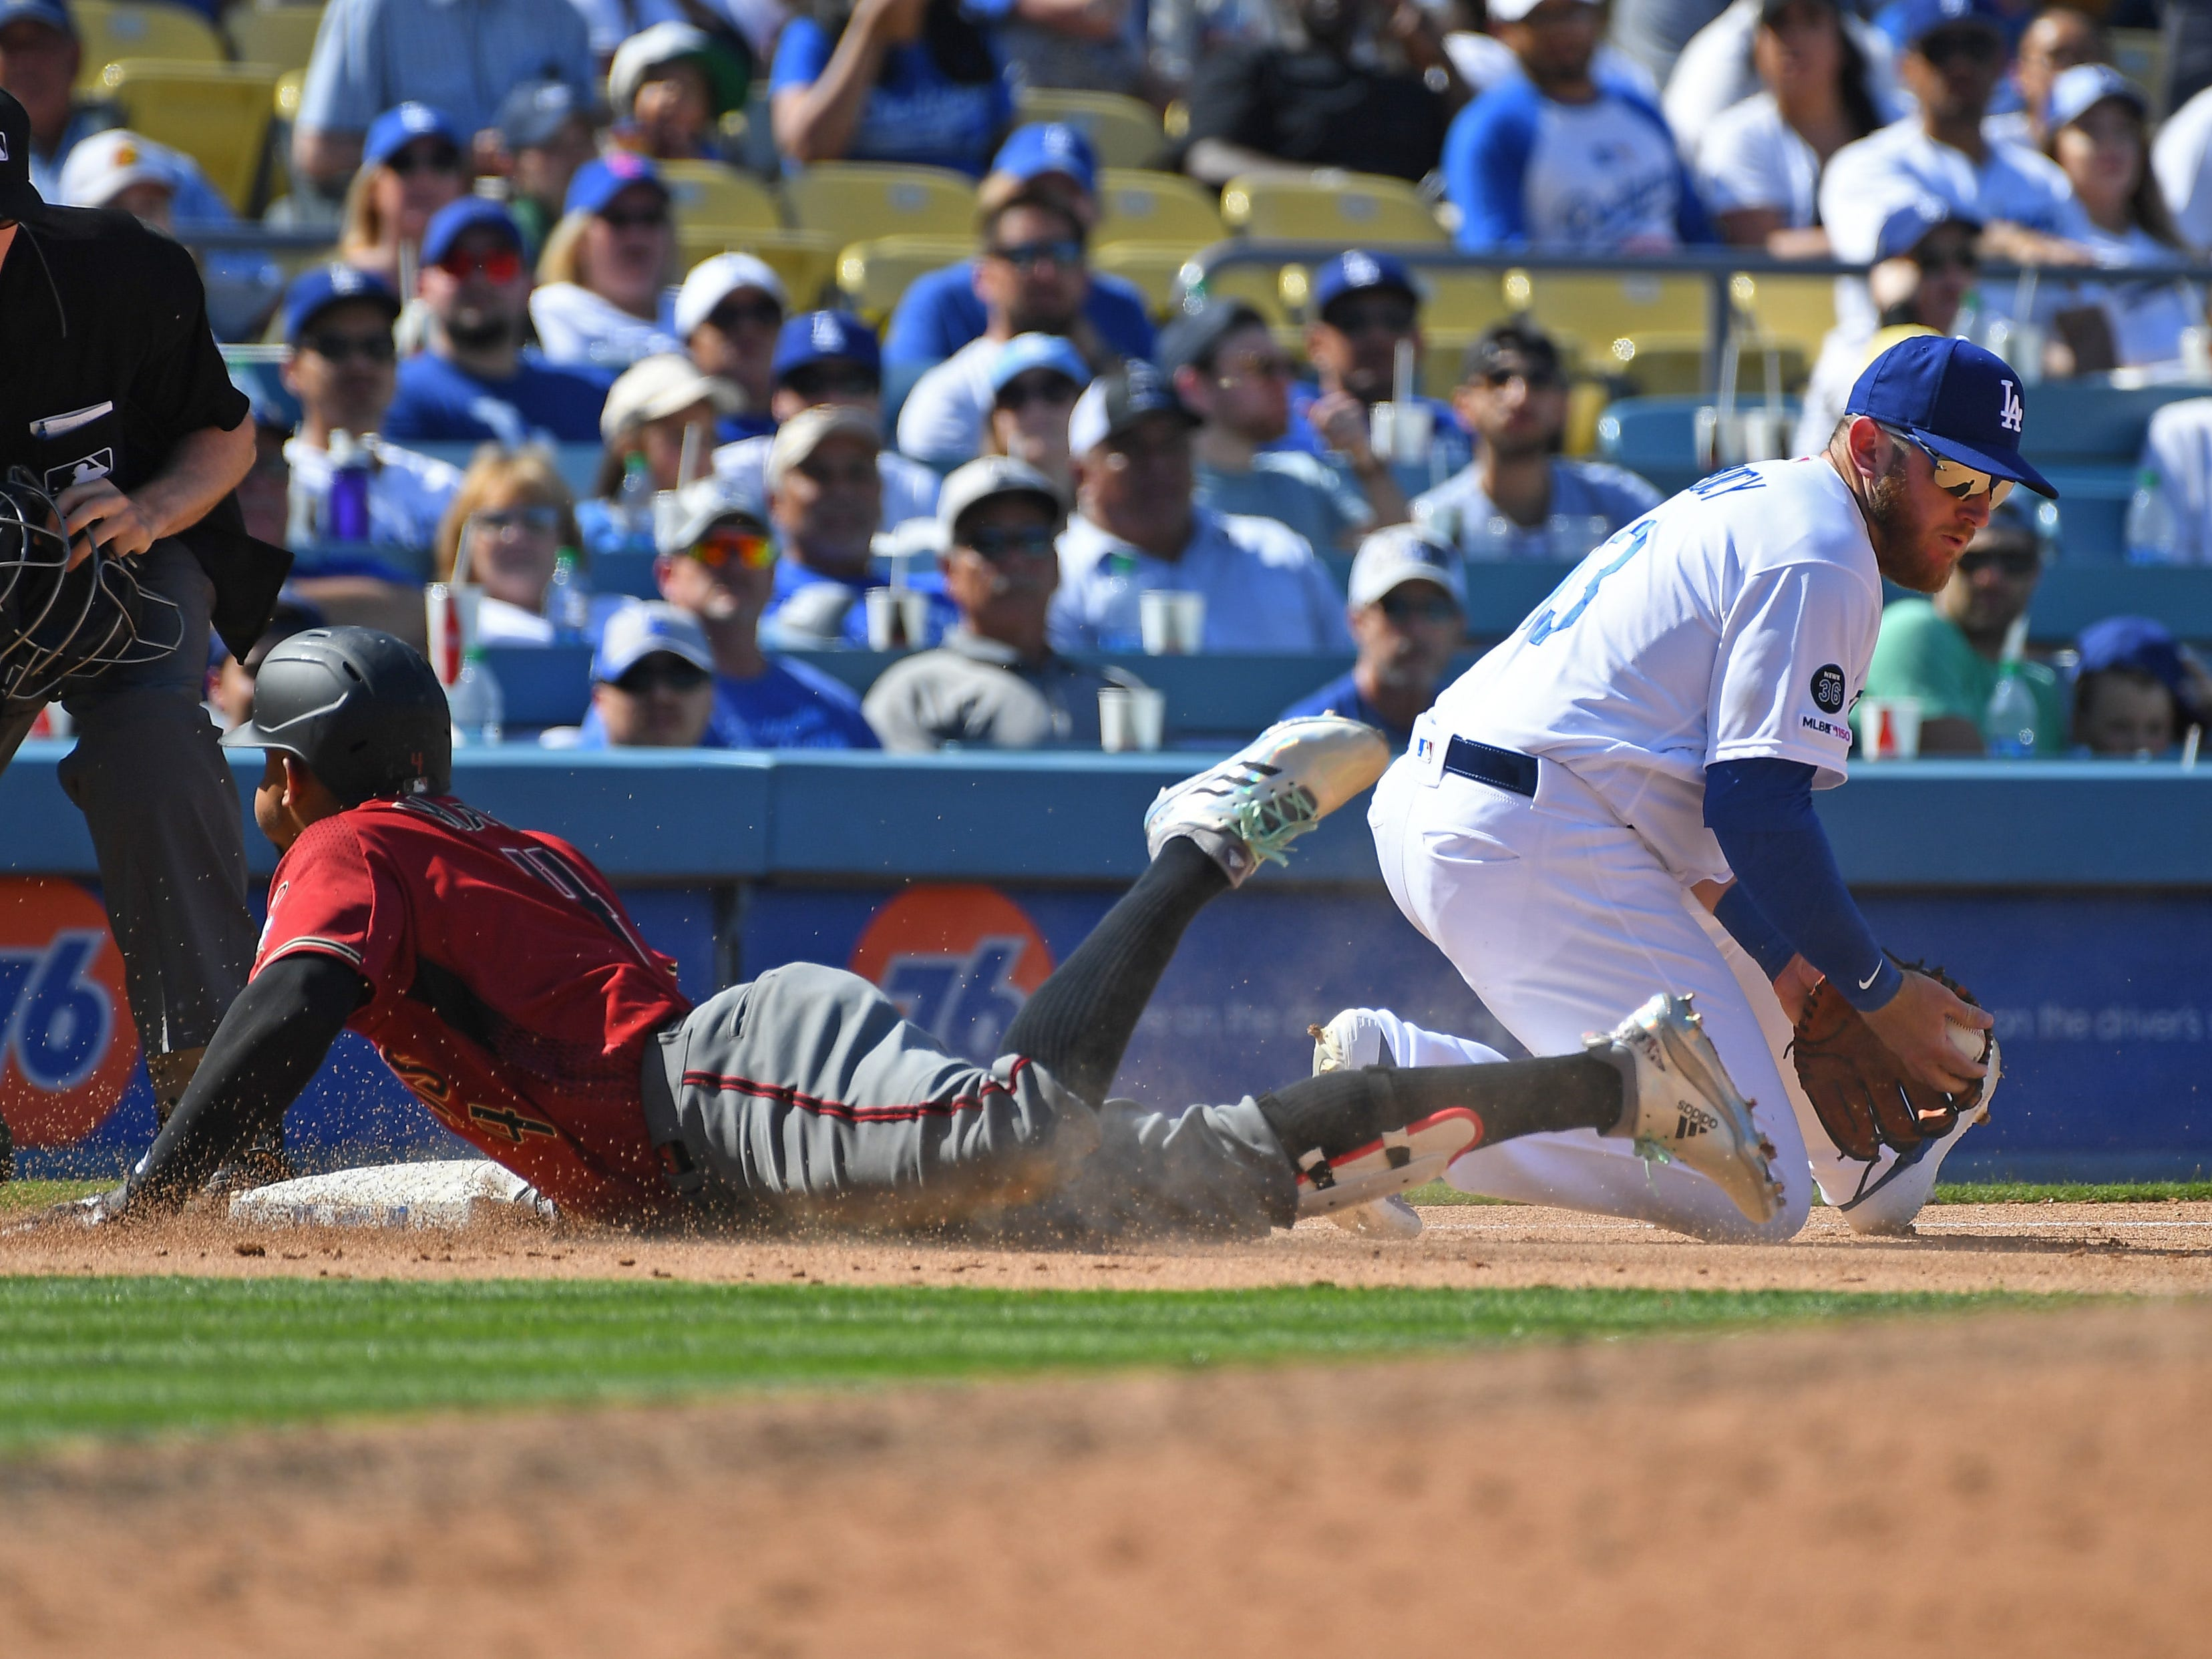 Mar 31, 2019; Los Angeles, CA, USA; Arizona Diamondbacks shortstop Ketel Marte (4) beats the throw to Los Angeles Dodgers third baseman Max Muncy (13) for a triple in the eighth inning of the game at Dodger Stadium.